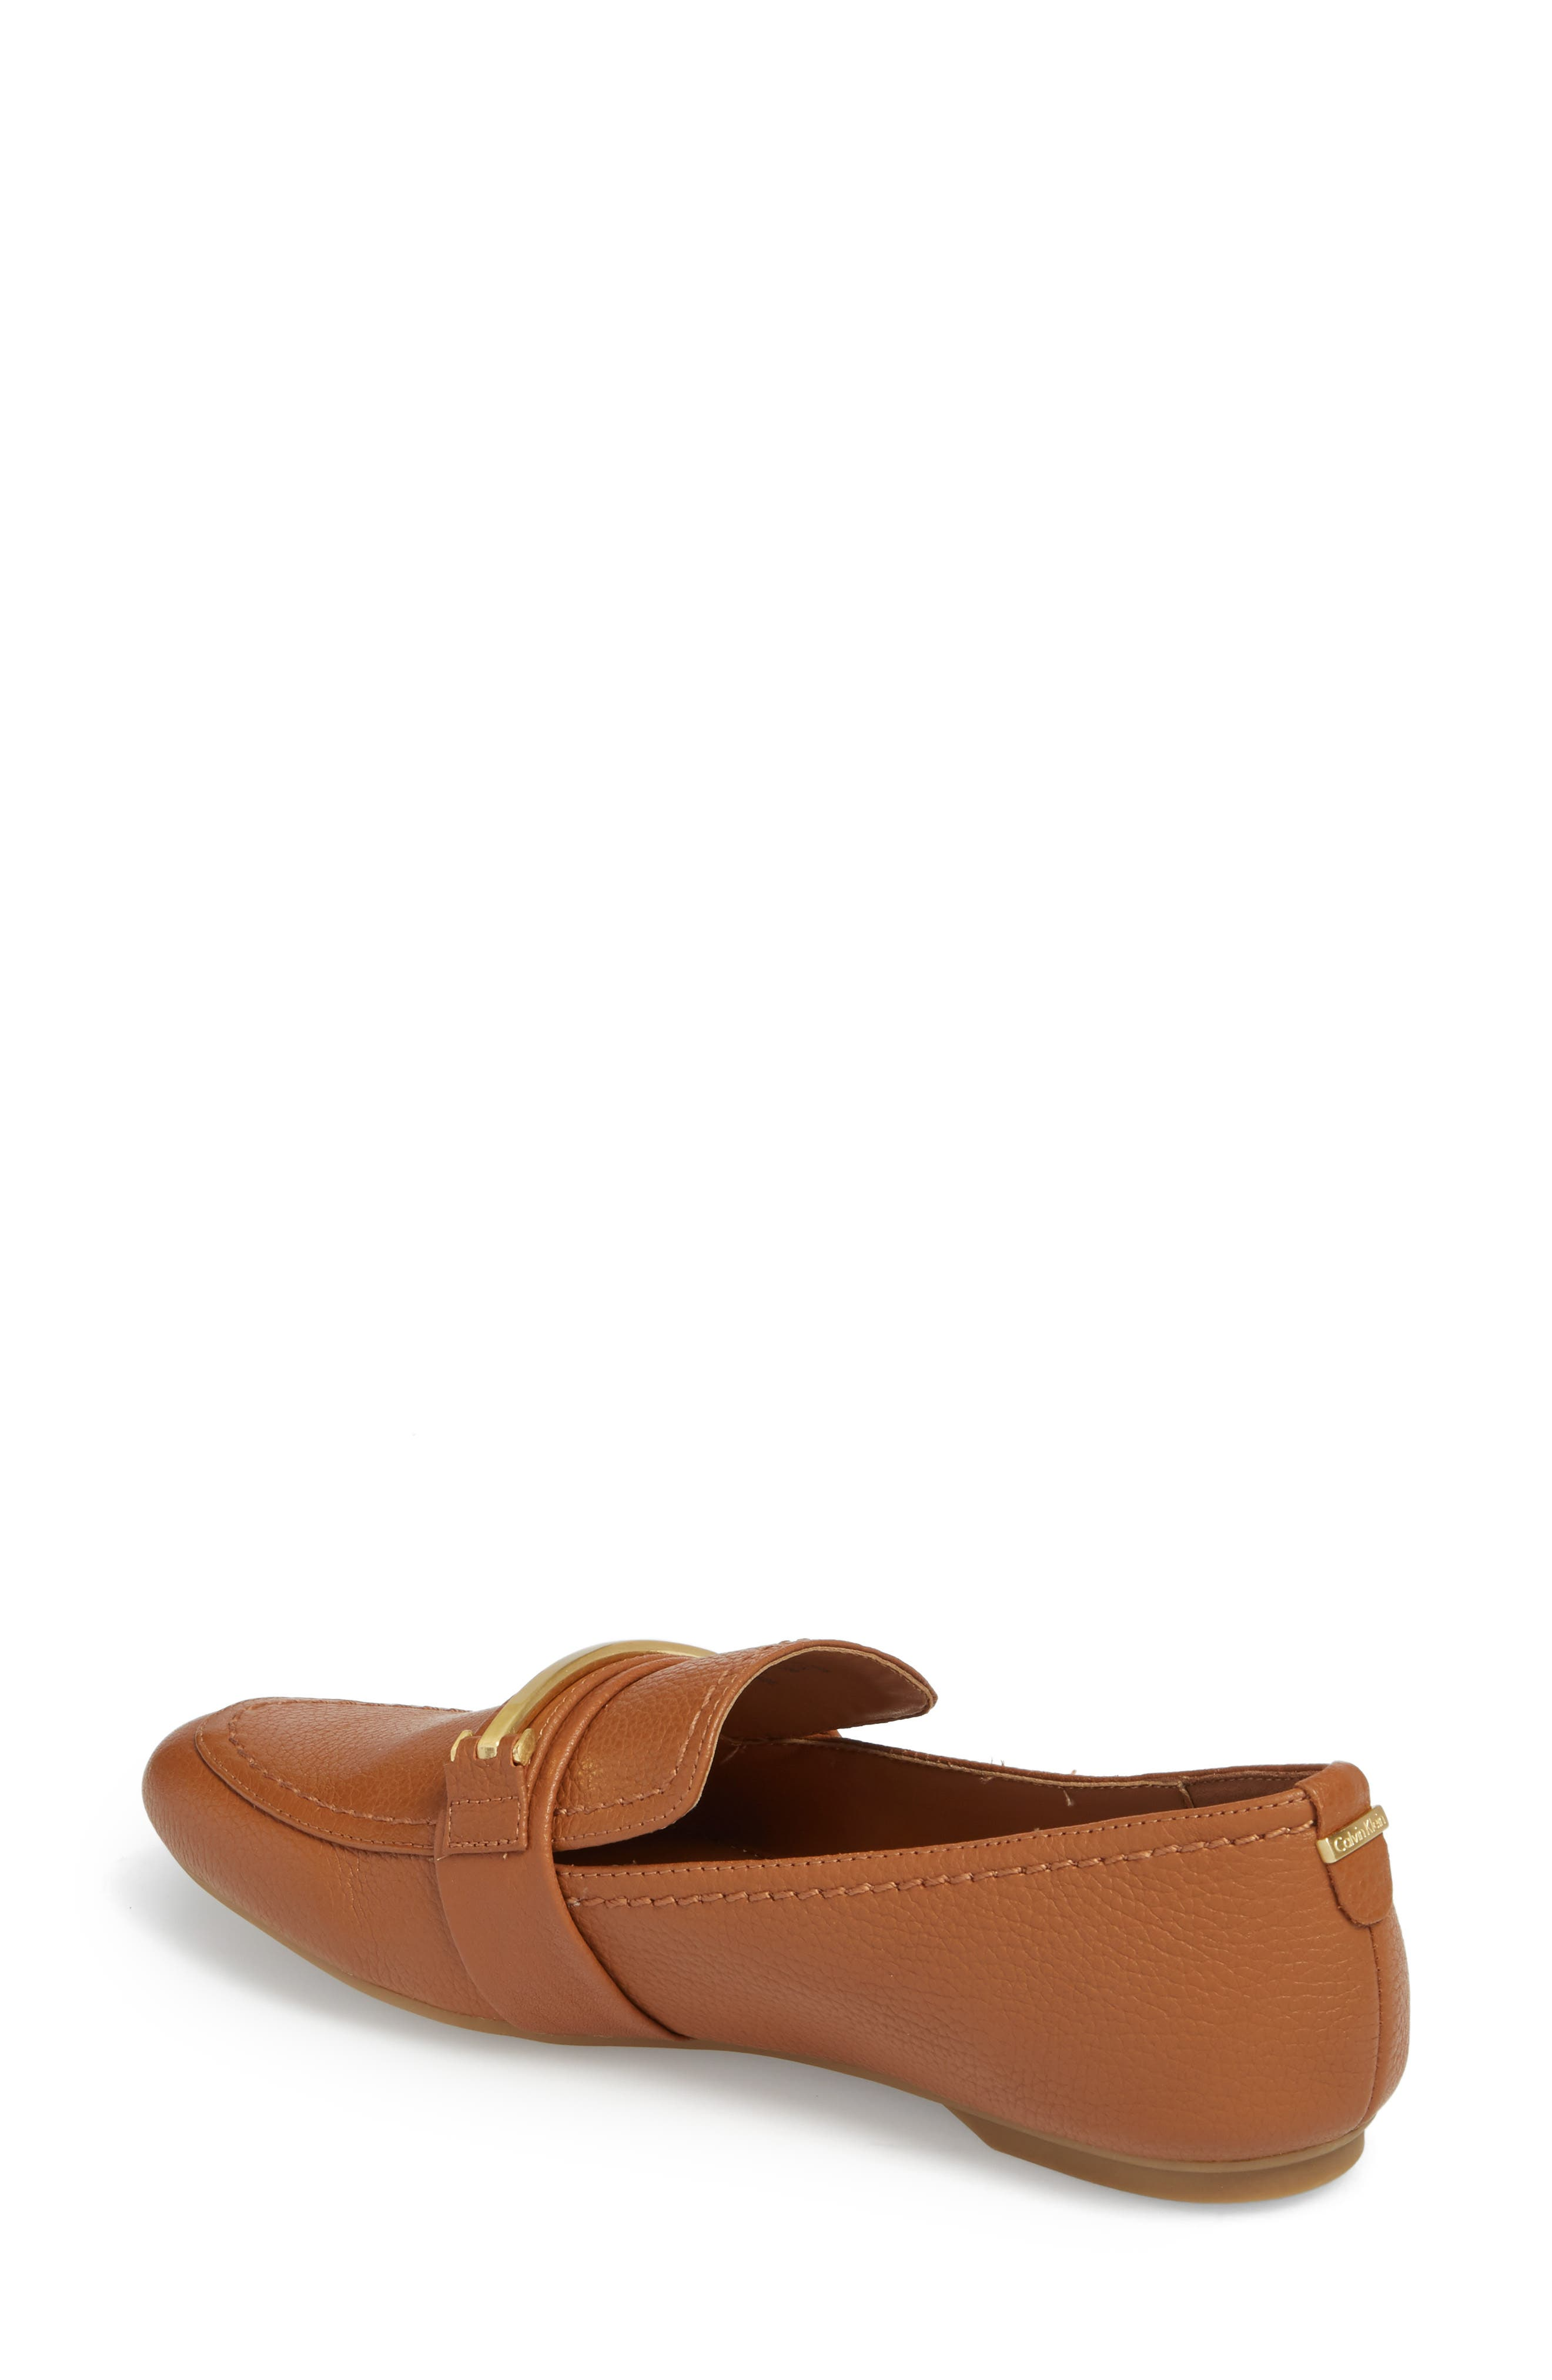 Orianna Loafer,                             Alternate thumbnail 2, color,                             COGNAC LEATHER